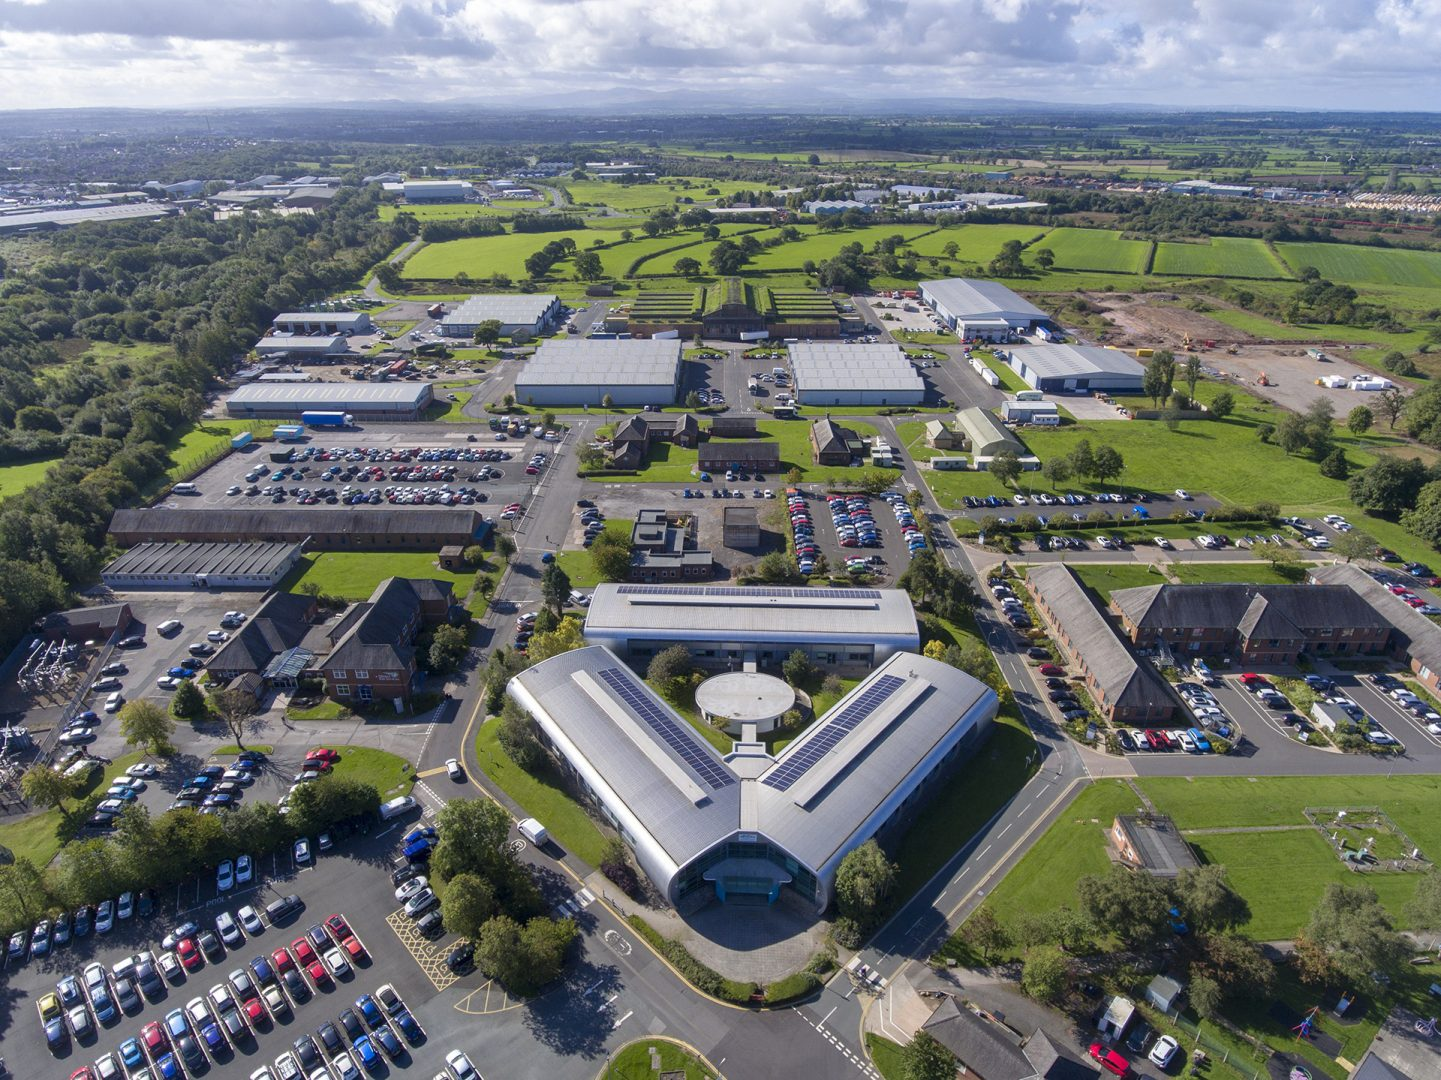 Kingsmoor Park Enterprise Zone, Cumbria